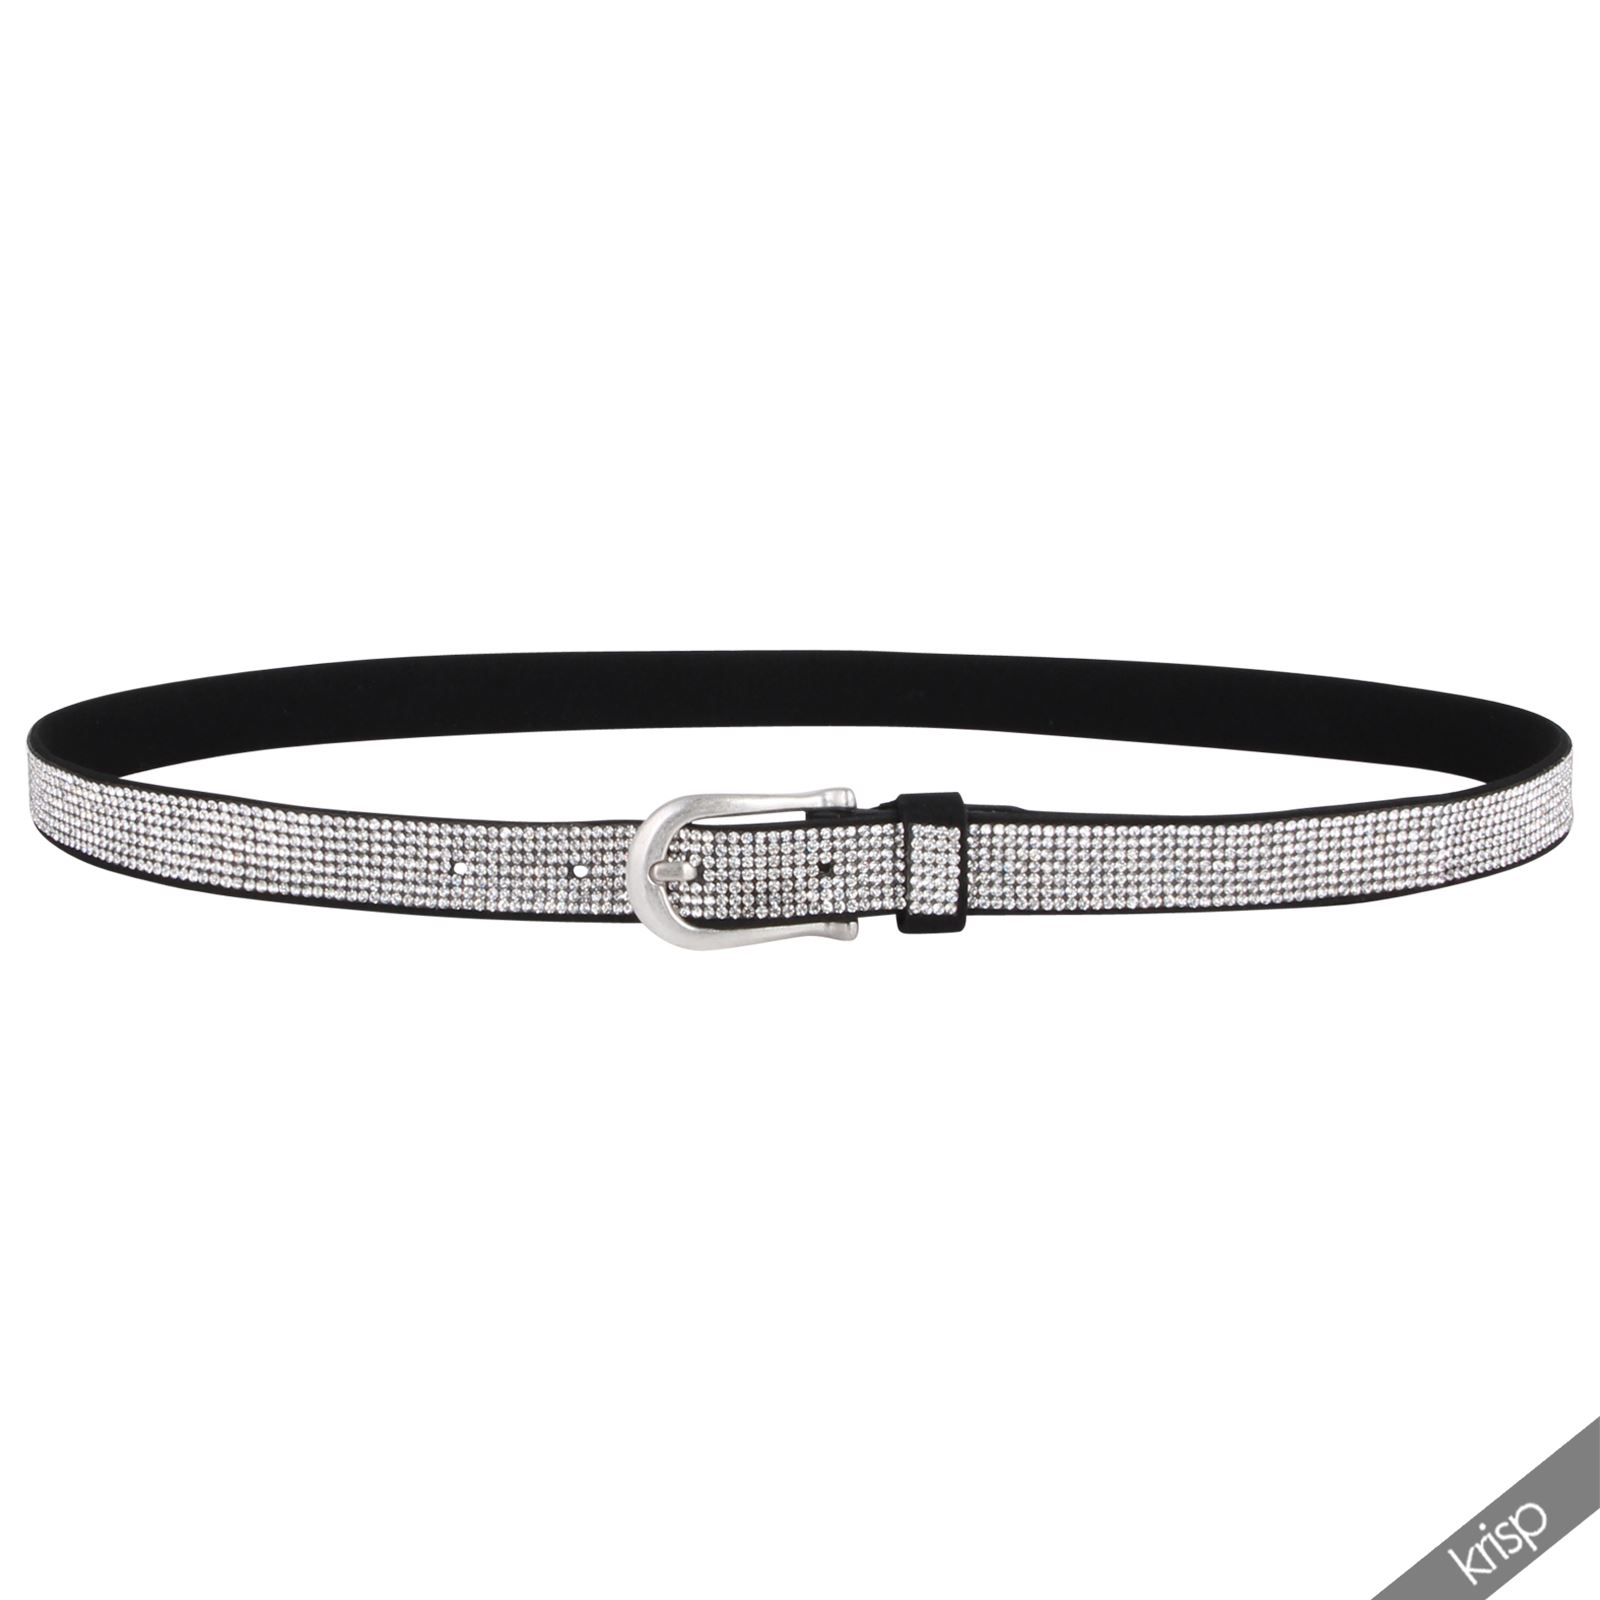 Women Ladies Girl Waist Chain Belt - With Diamante Chain - Rhinestone Bridal Wedding - Silver Weddingdecoruk. 5 out of 5 stars () $ Favorite Add to See similar items + More like this. Rhinestone Embellished Diamanté Ice Belt LttlvntgBoutique. 5 out of .